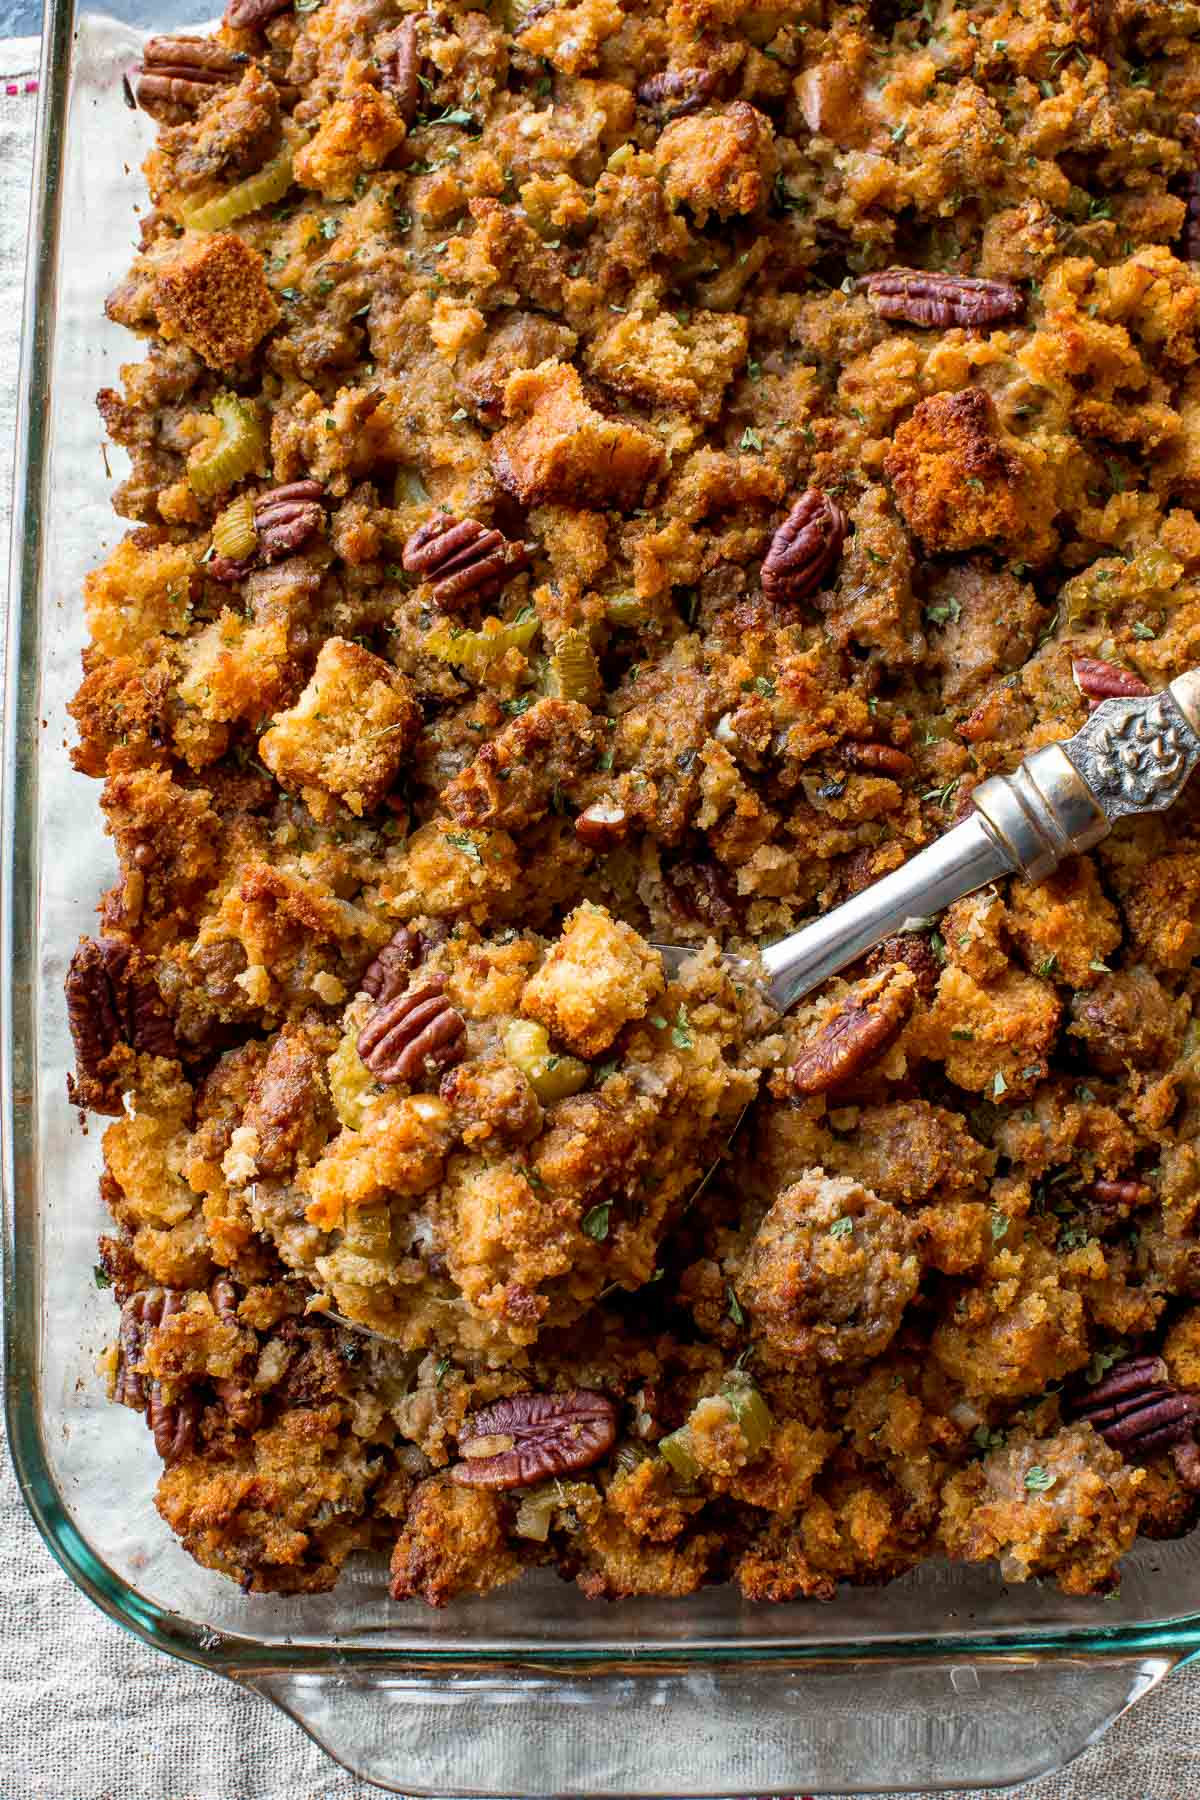 Here's how to prepare Thanksgiving side dish cornbread stuffing ahead of time! The most flavorful blend of ingredients and herbs. Recipe on sallysbakingaddiction.com